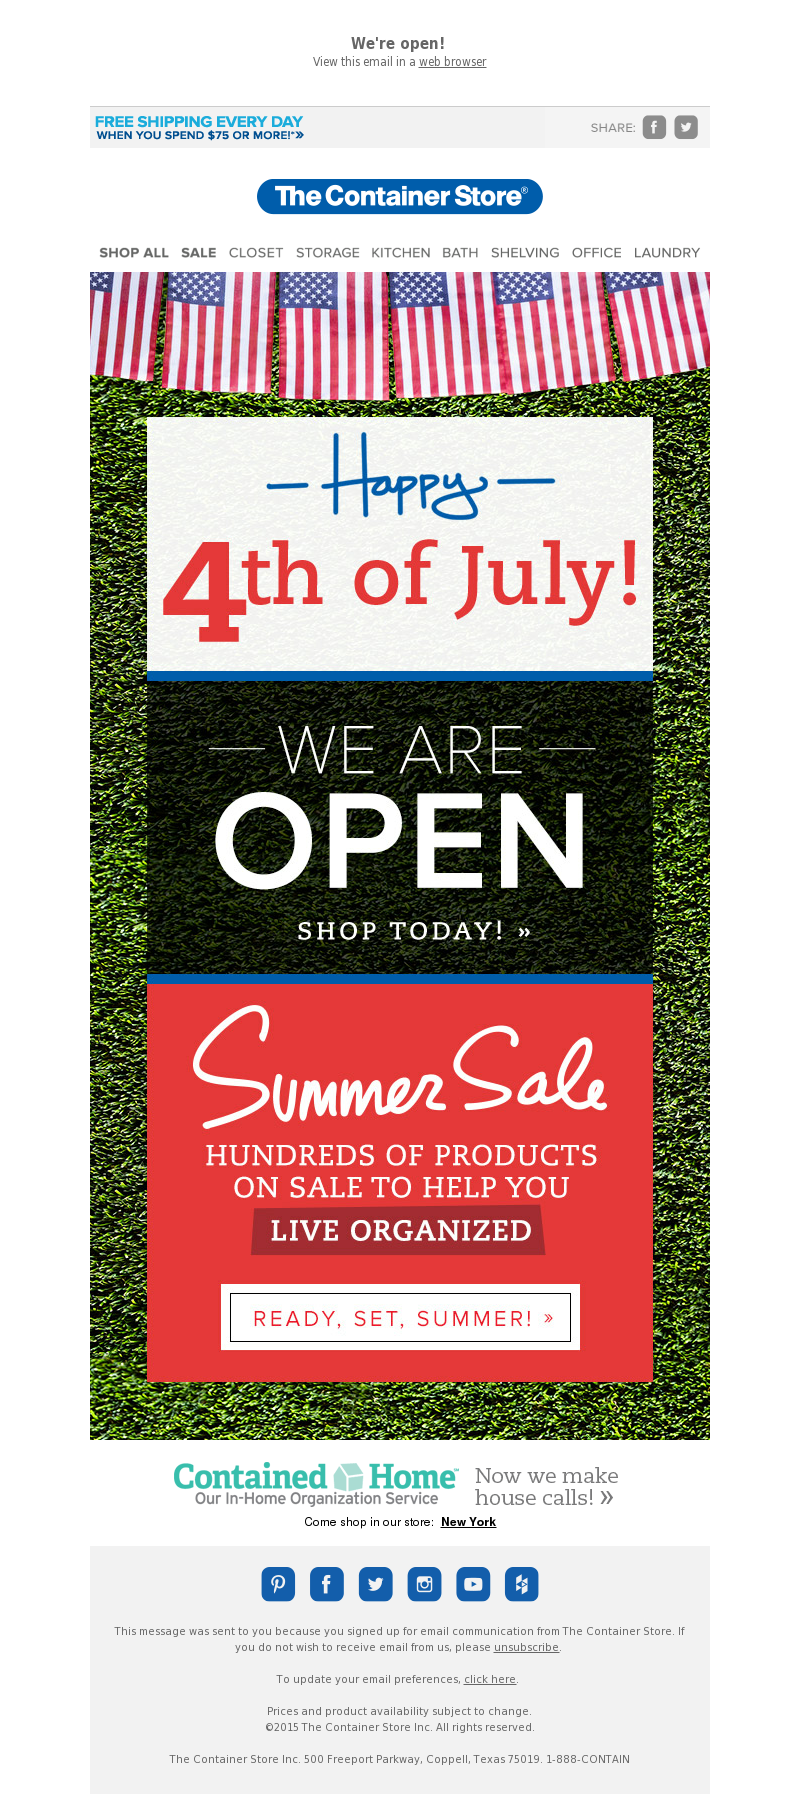 We're open! View this email in a web browser FREE SHIPPING EVERYDAY!* Share